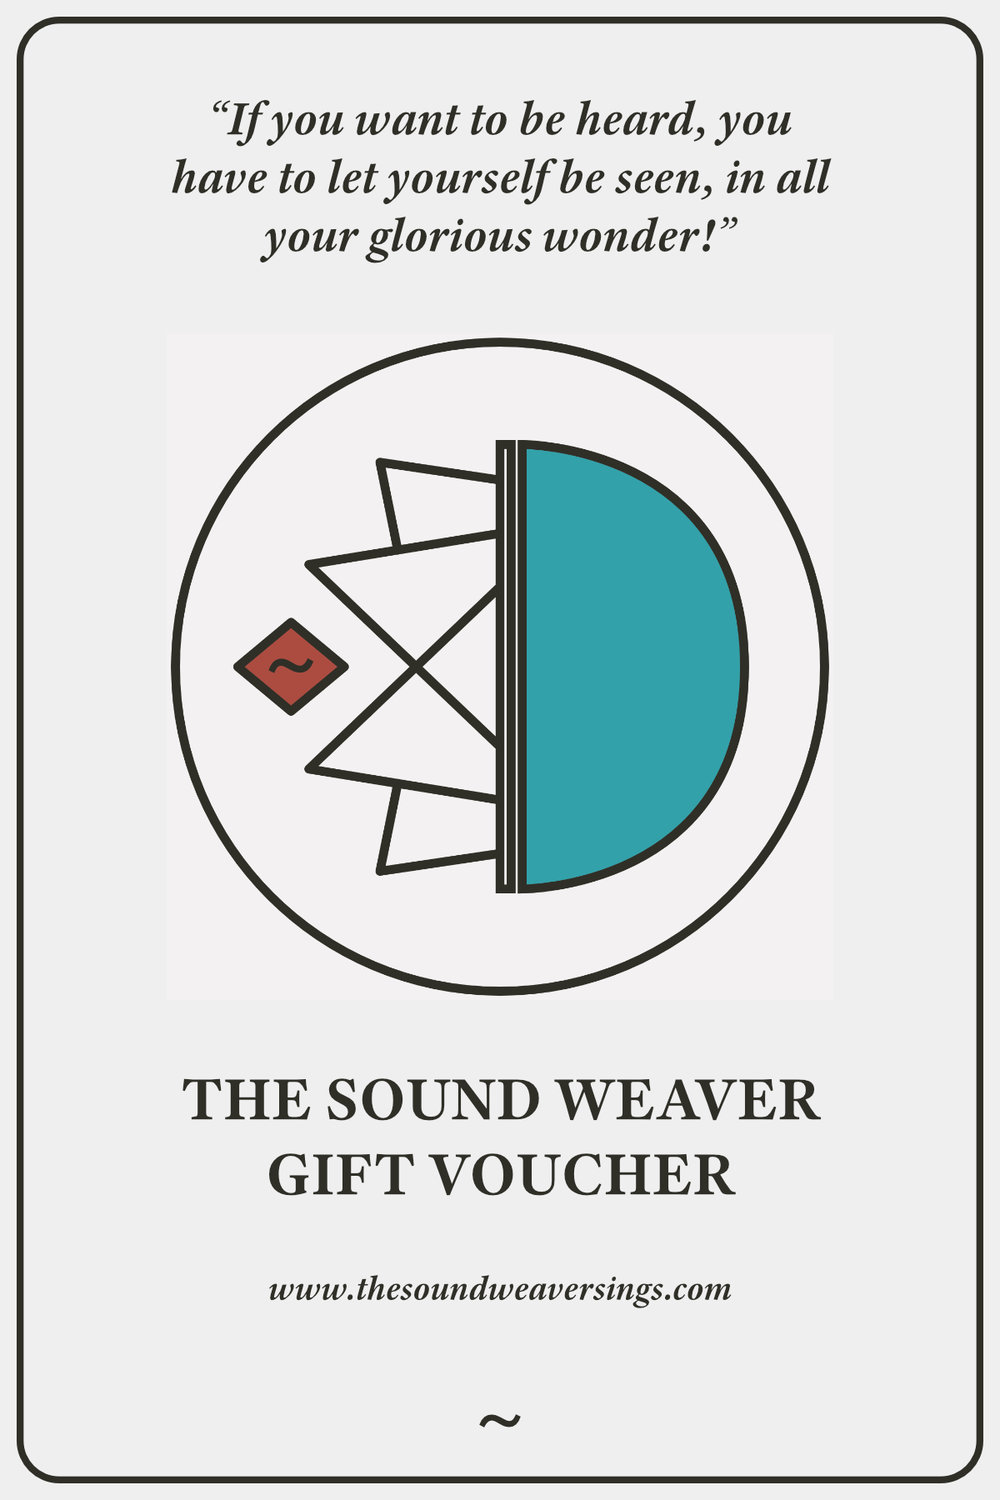 Buy Now - Song & Sound Gift Voucher